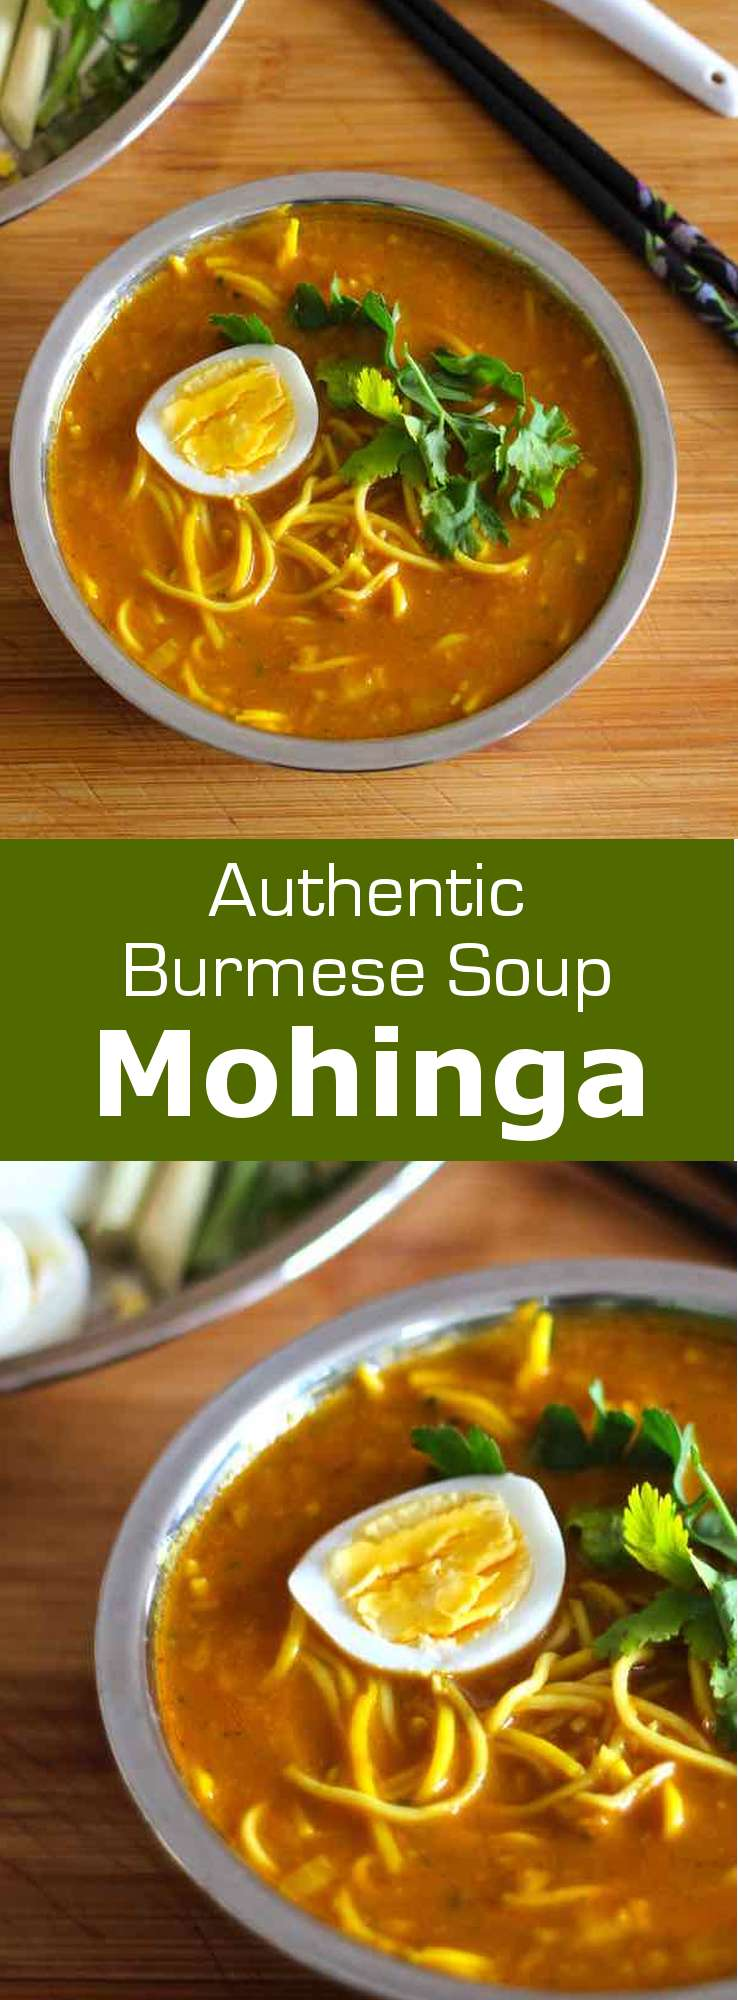 Mohinga is a fish-based soup prepared with rice noodles and flavored with lemongrass, which is considered as the national dish in Burma. #burma #myanmar #196flavors